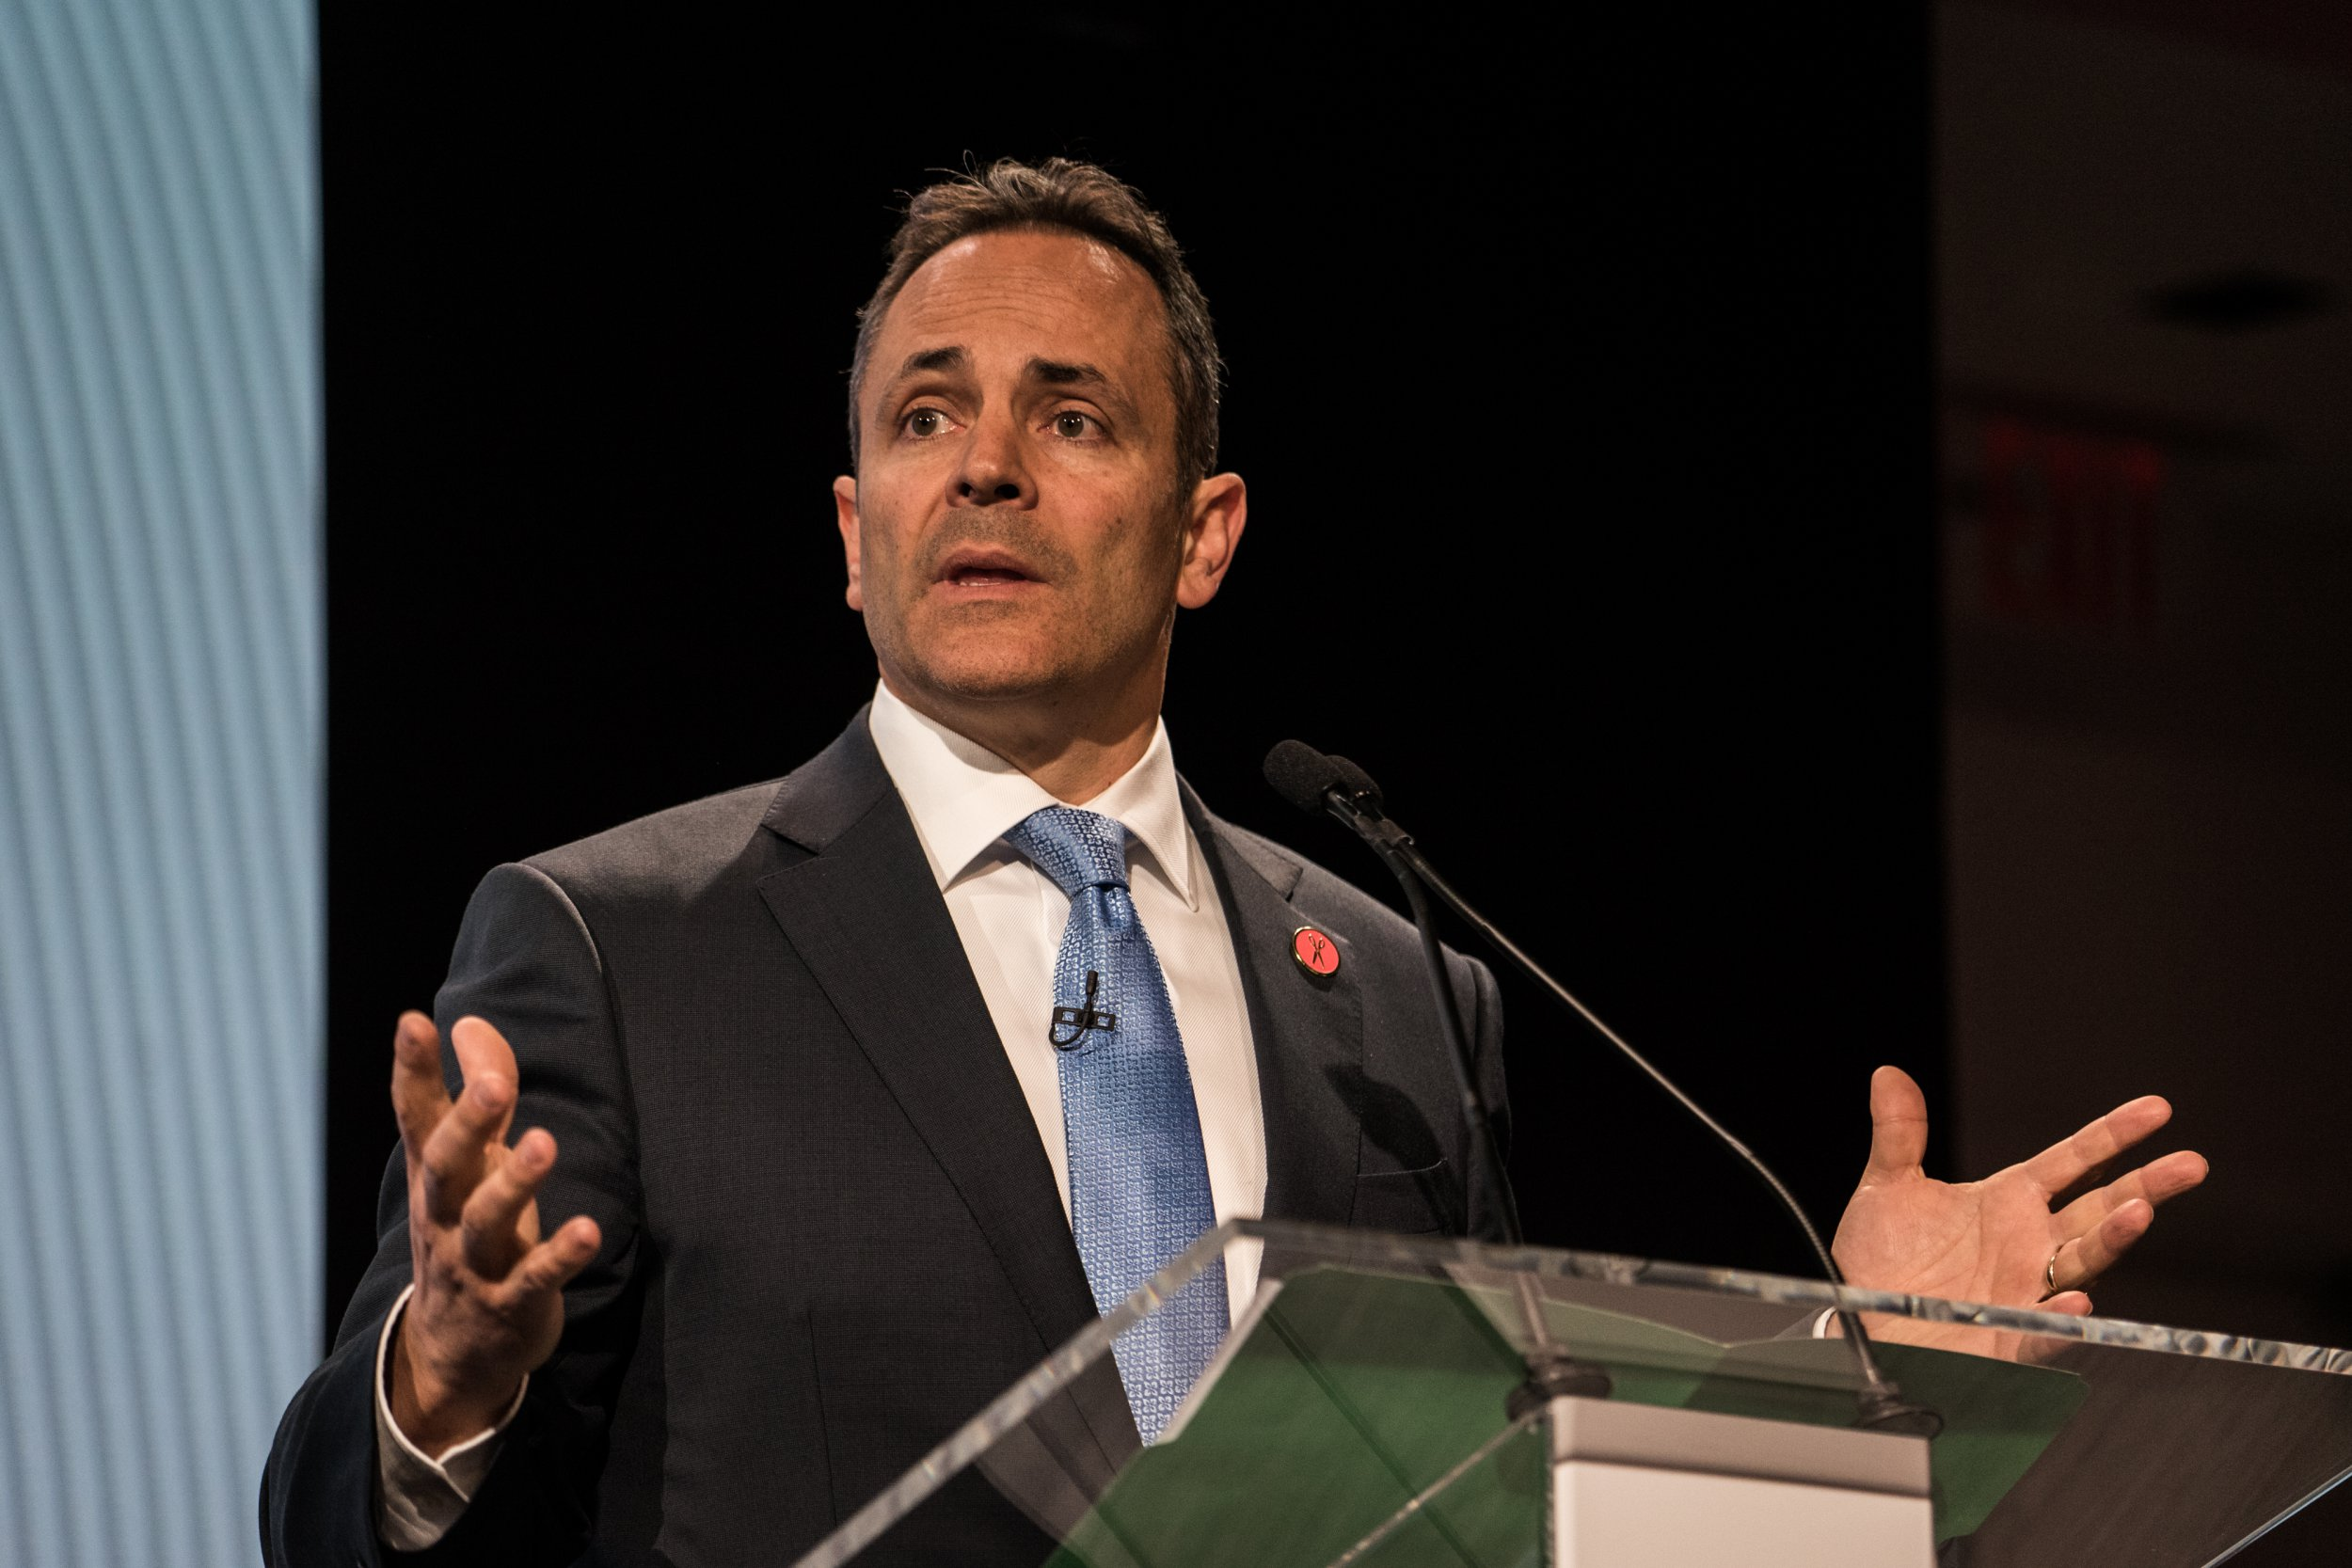 Matt Bevin, governor of Kentucky, speaks during the 2017 International Finance and Infrastructure Cooperation Forum in New York, U.S., on Monday, April 24, 2017. The forum brings together U.S. and Chinese government officials and global business executives from Fortune 500 companies. Photographer: Misha Friedman/Bloomberg via Getty Images